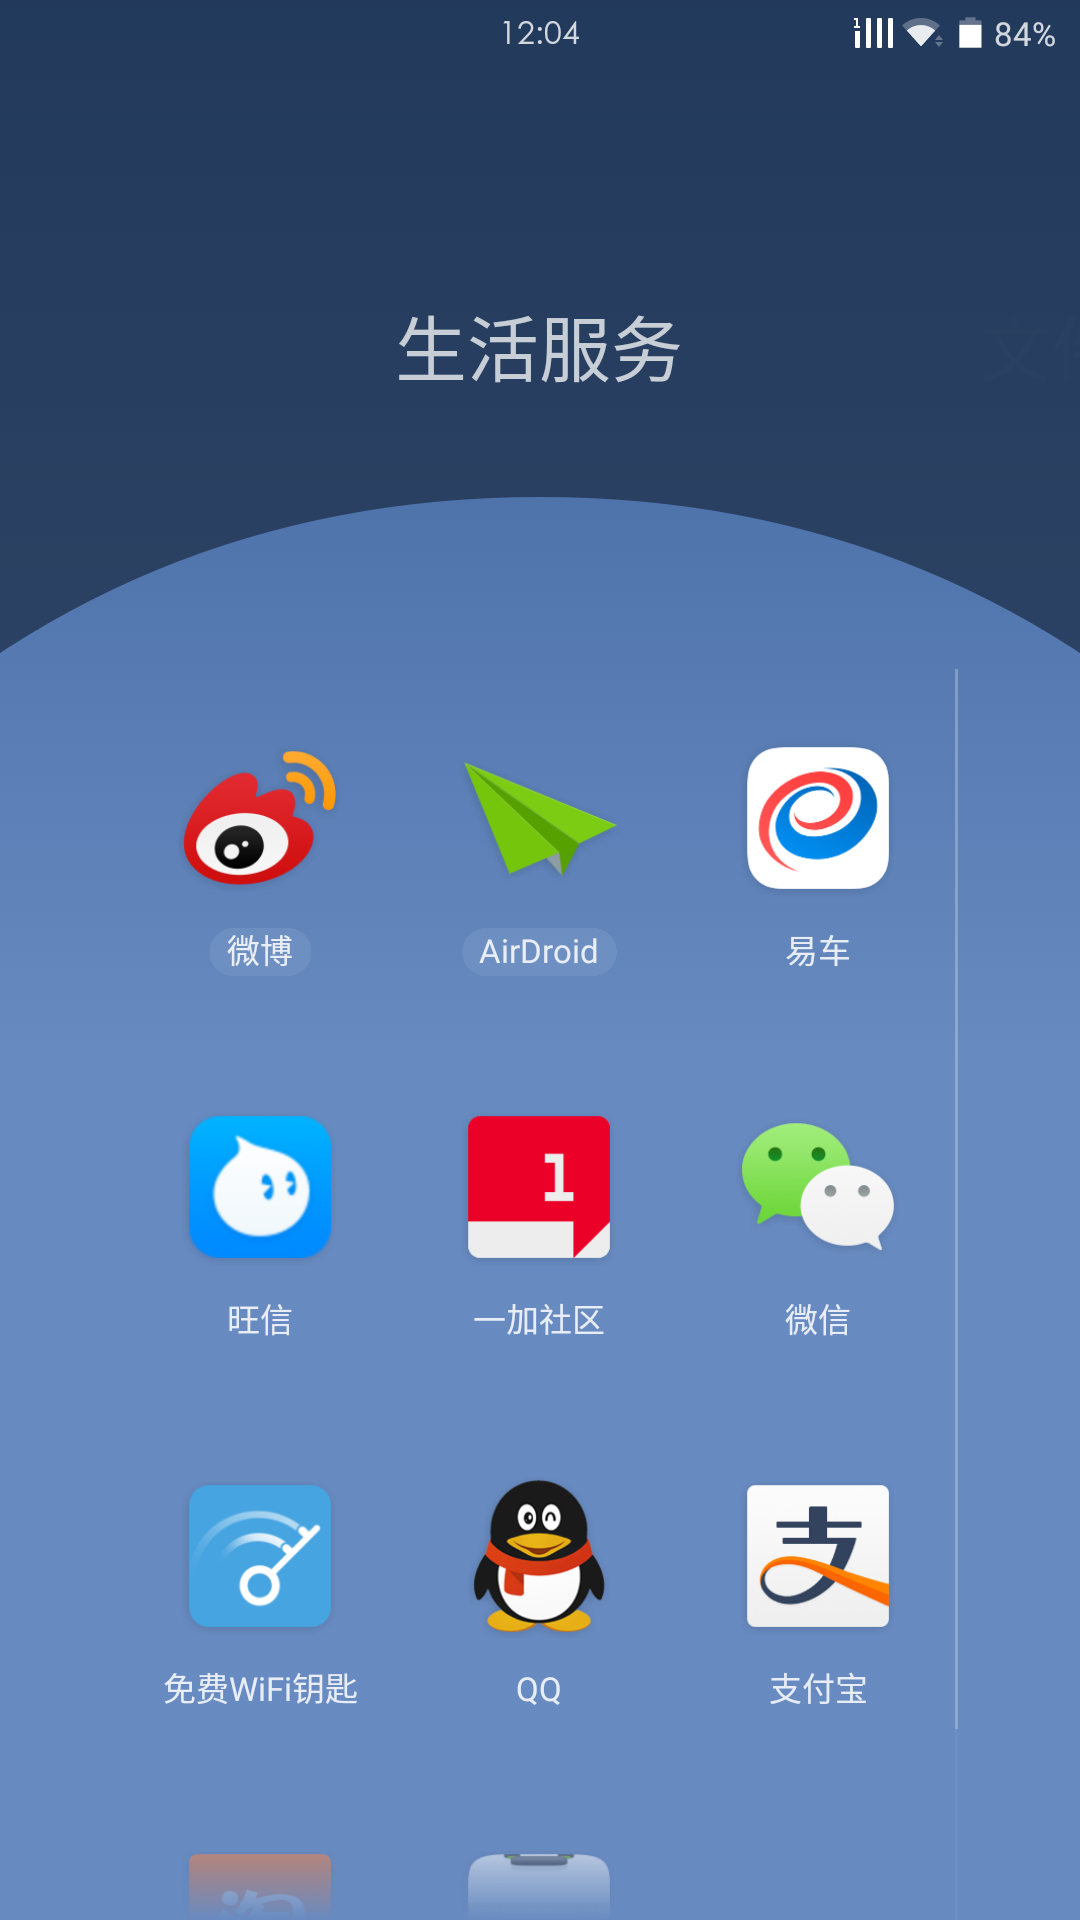 Screenshot_2015-08-28-12-04-44.png